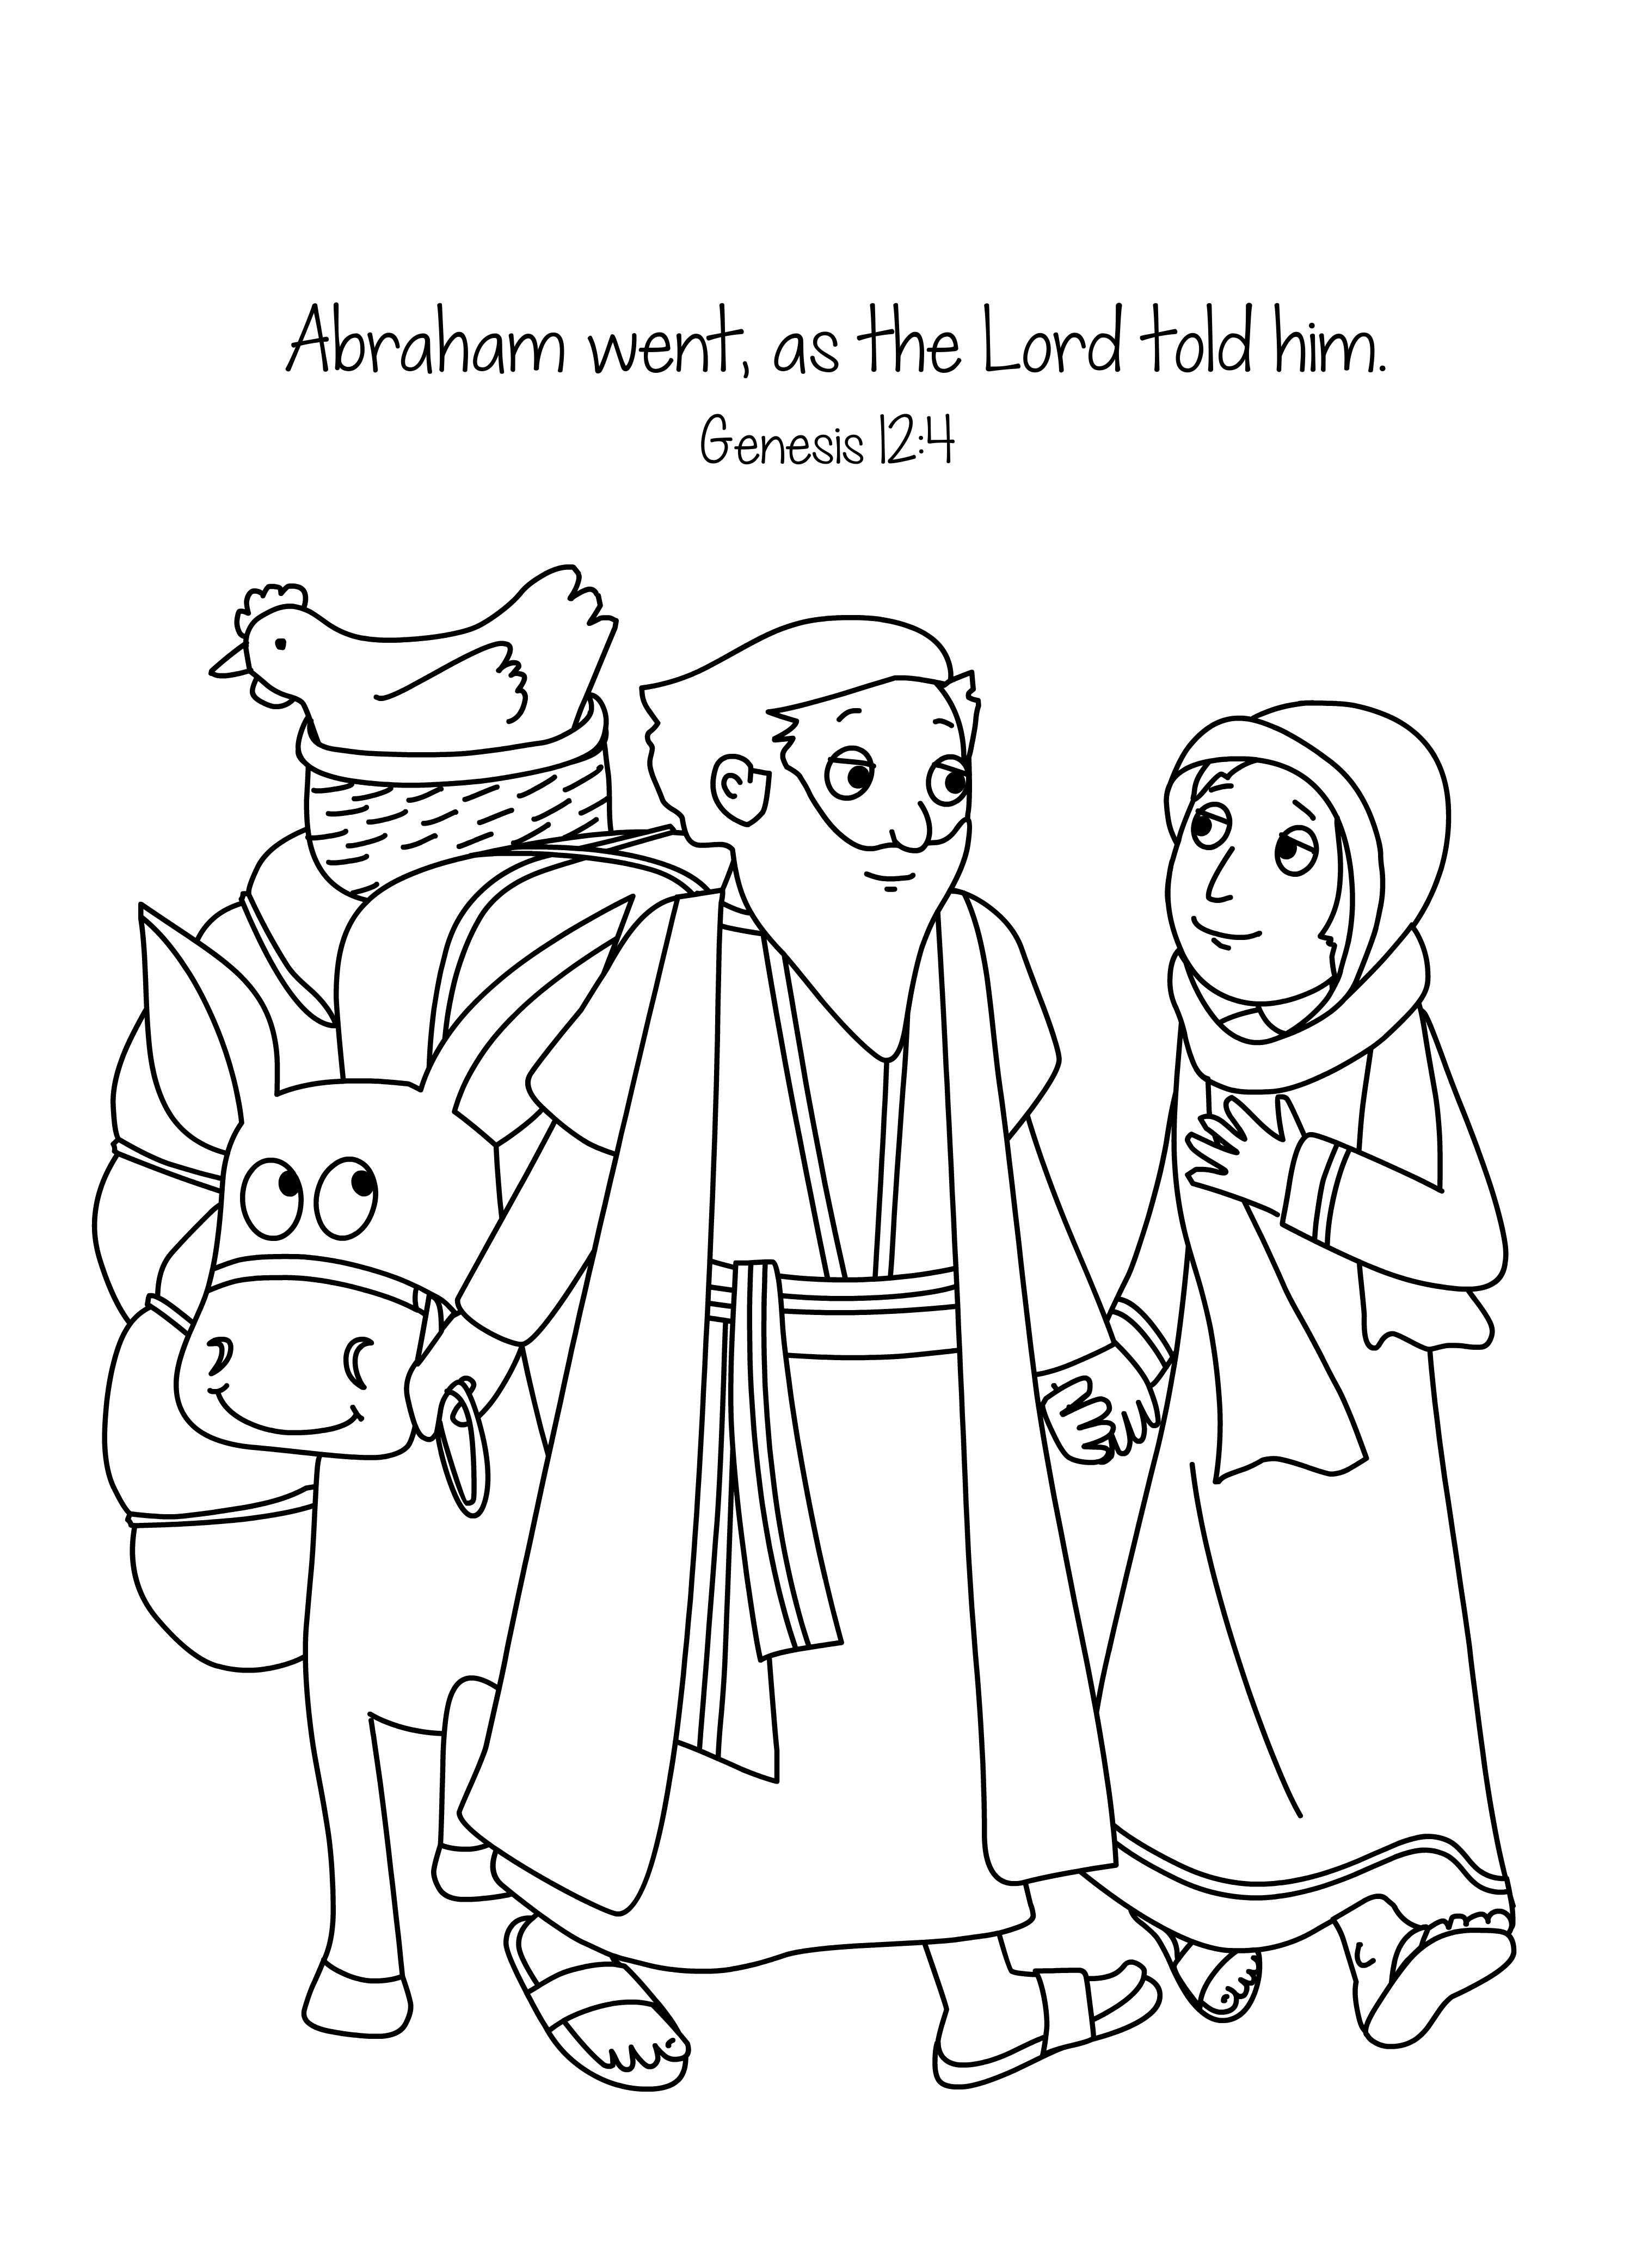 Preschool bible lessons coloring pages - Bible Stories Abraham And Sarah Coloring Page Jpg 3 028 4 167 Pixels